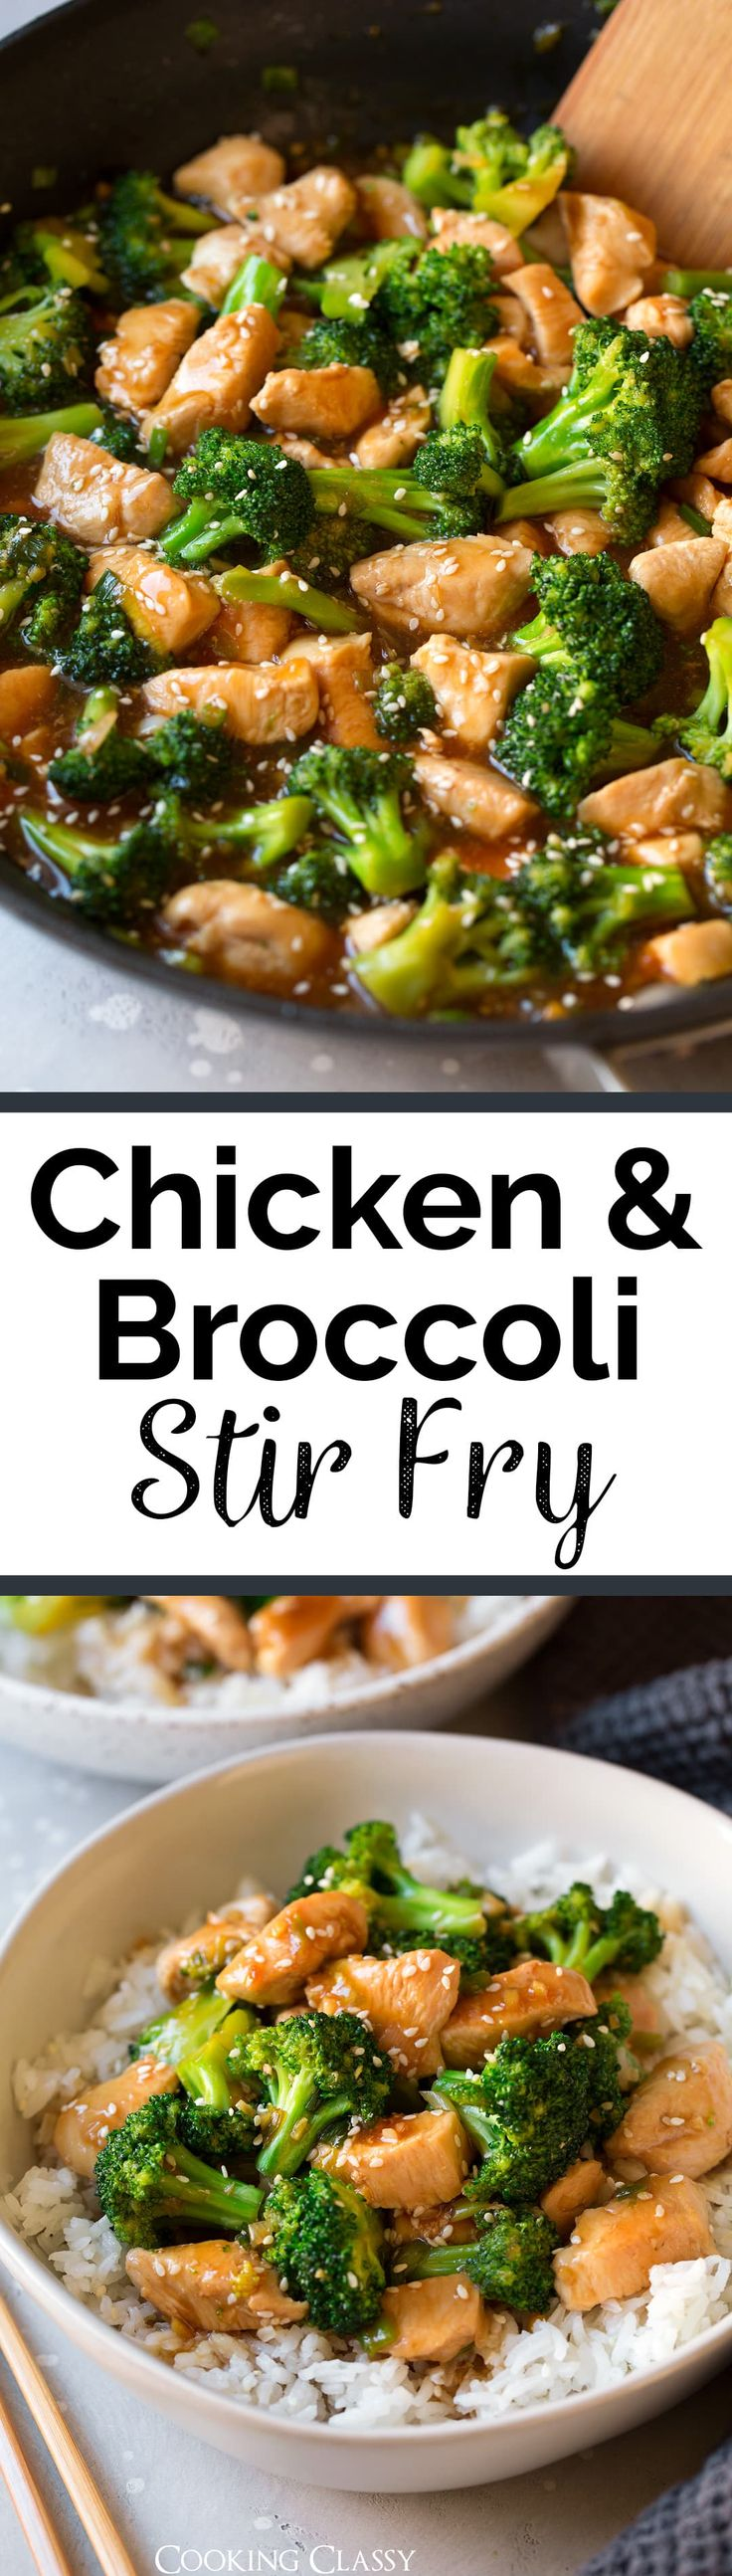 Chicken and Broccoli Stir Fry - Pan seared chicken and sautéed broccoli are covered in a sweet and salty teriyaki style sauce that will leave you wanting more! It's such an easy and flavorful recipe that's perfect for those hectic weekdays, plus it's sure to satisfy those Chinese take-out cravings.  via @cookingclassy